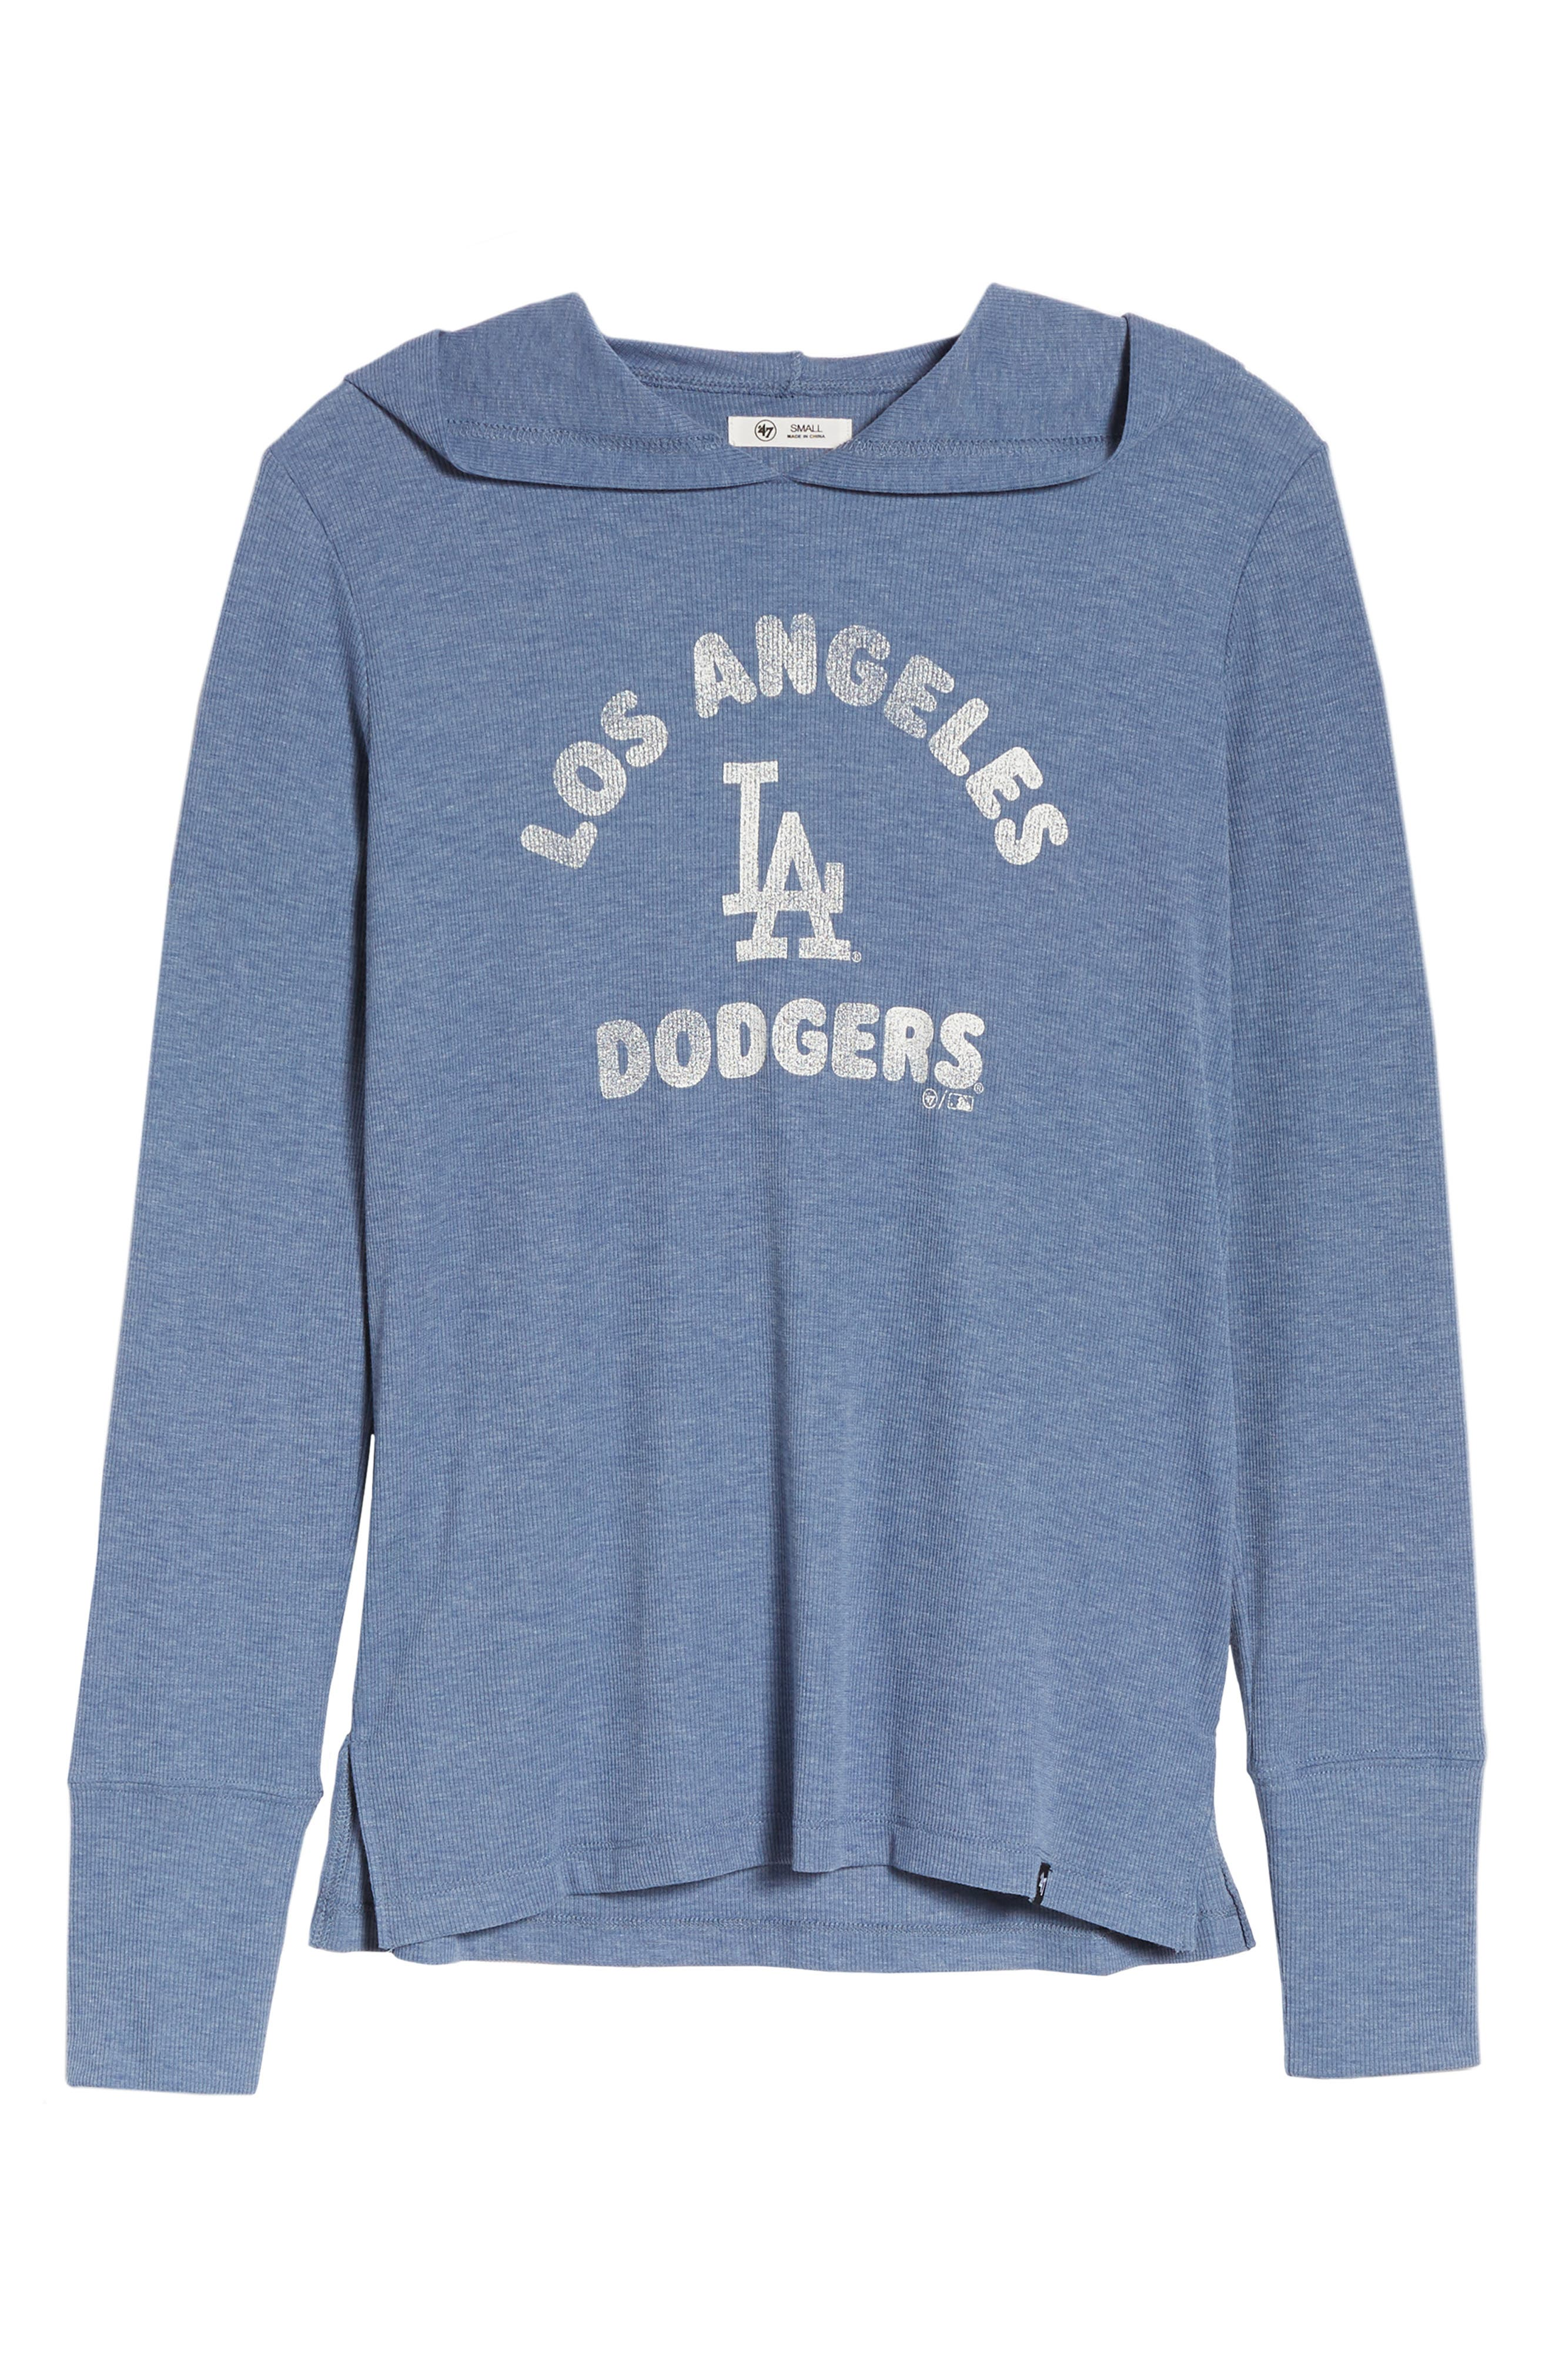 Campbell Los Angeles Dodgers Rib Knit Hooded Top,                             Alternate thumbnail 7, color,                             Bleacher Blue